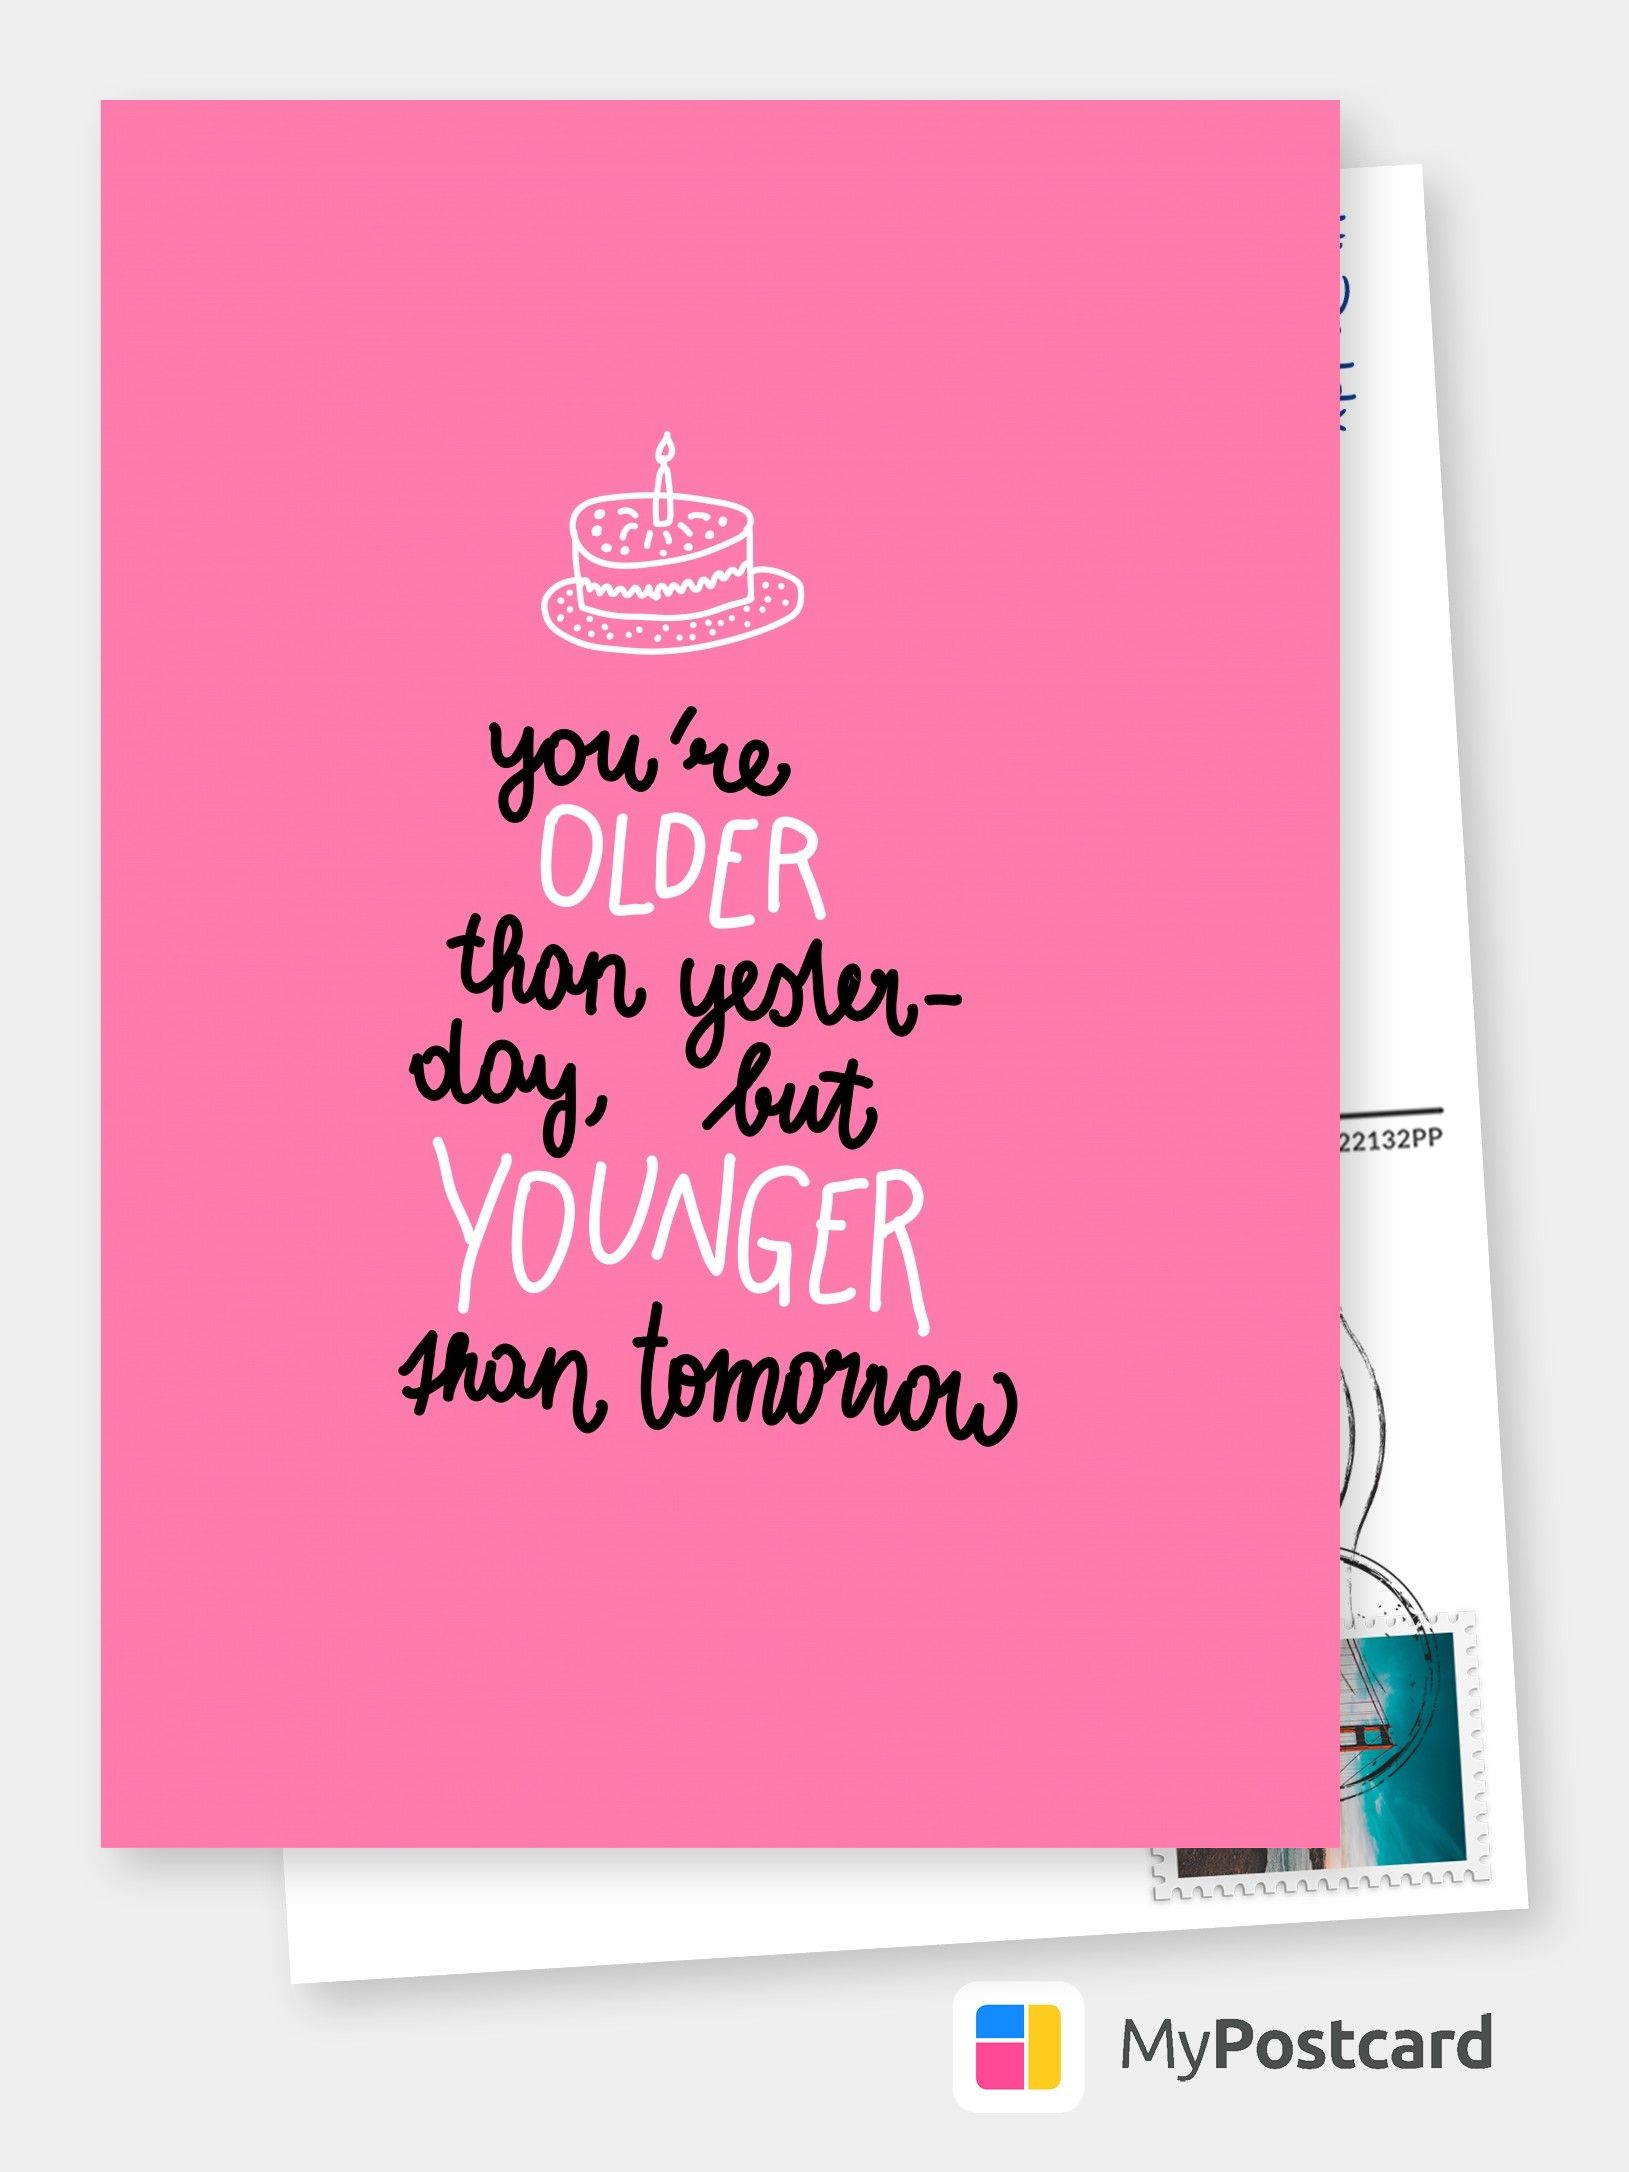 Printed Birthday Cards Online Free International Shipping Send Cards Online Mailed For You Internationally Grandpa Birthday Card Birthday Card Online Birthday Card For Aunt